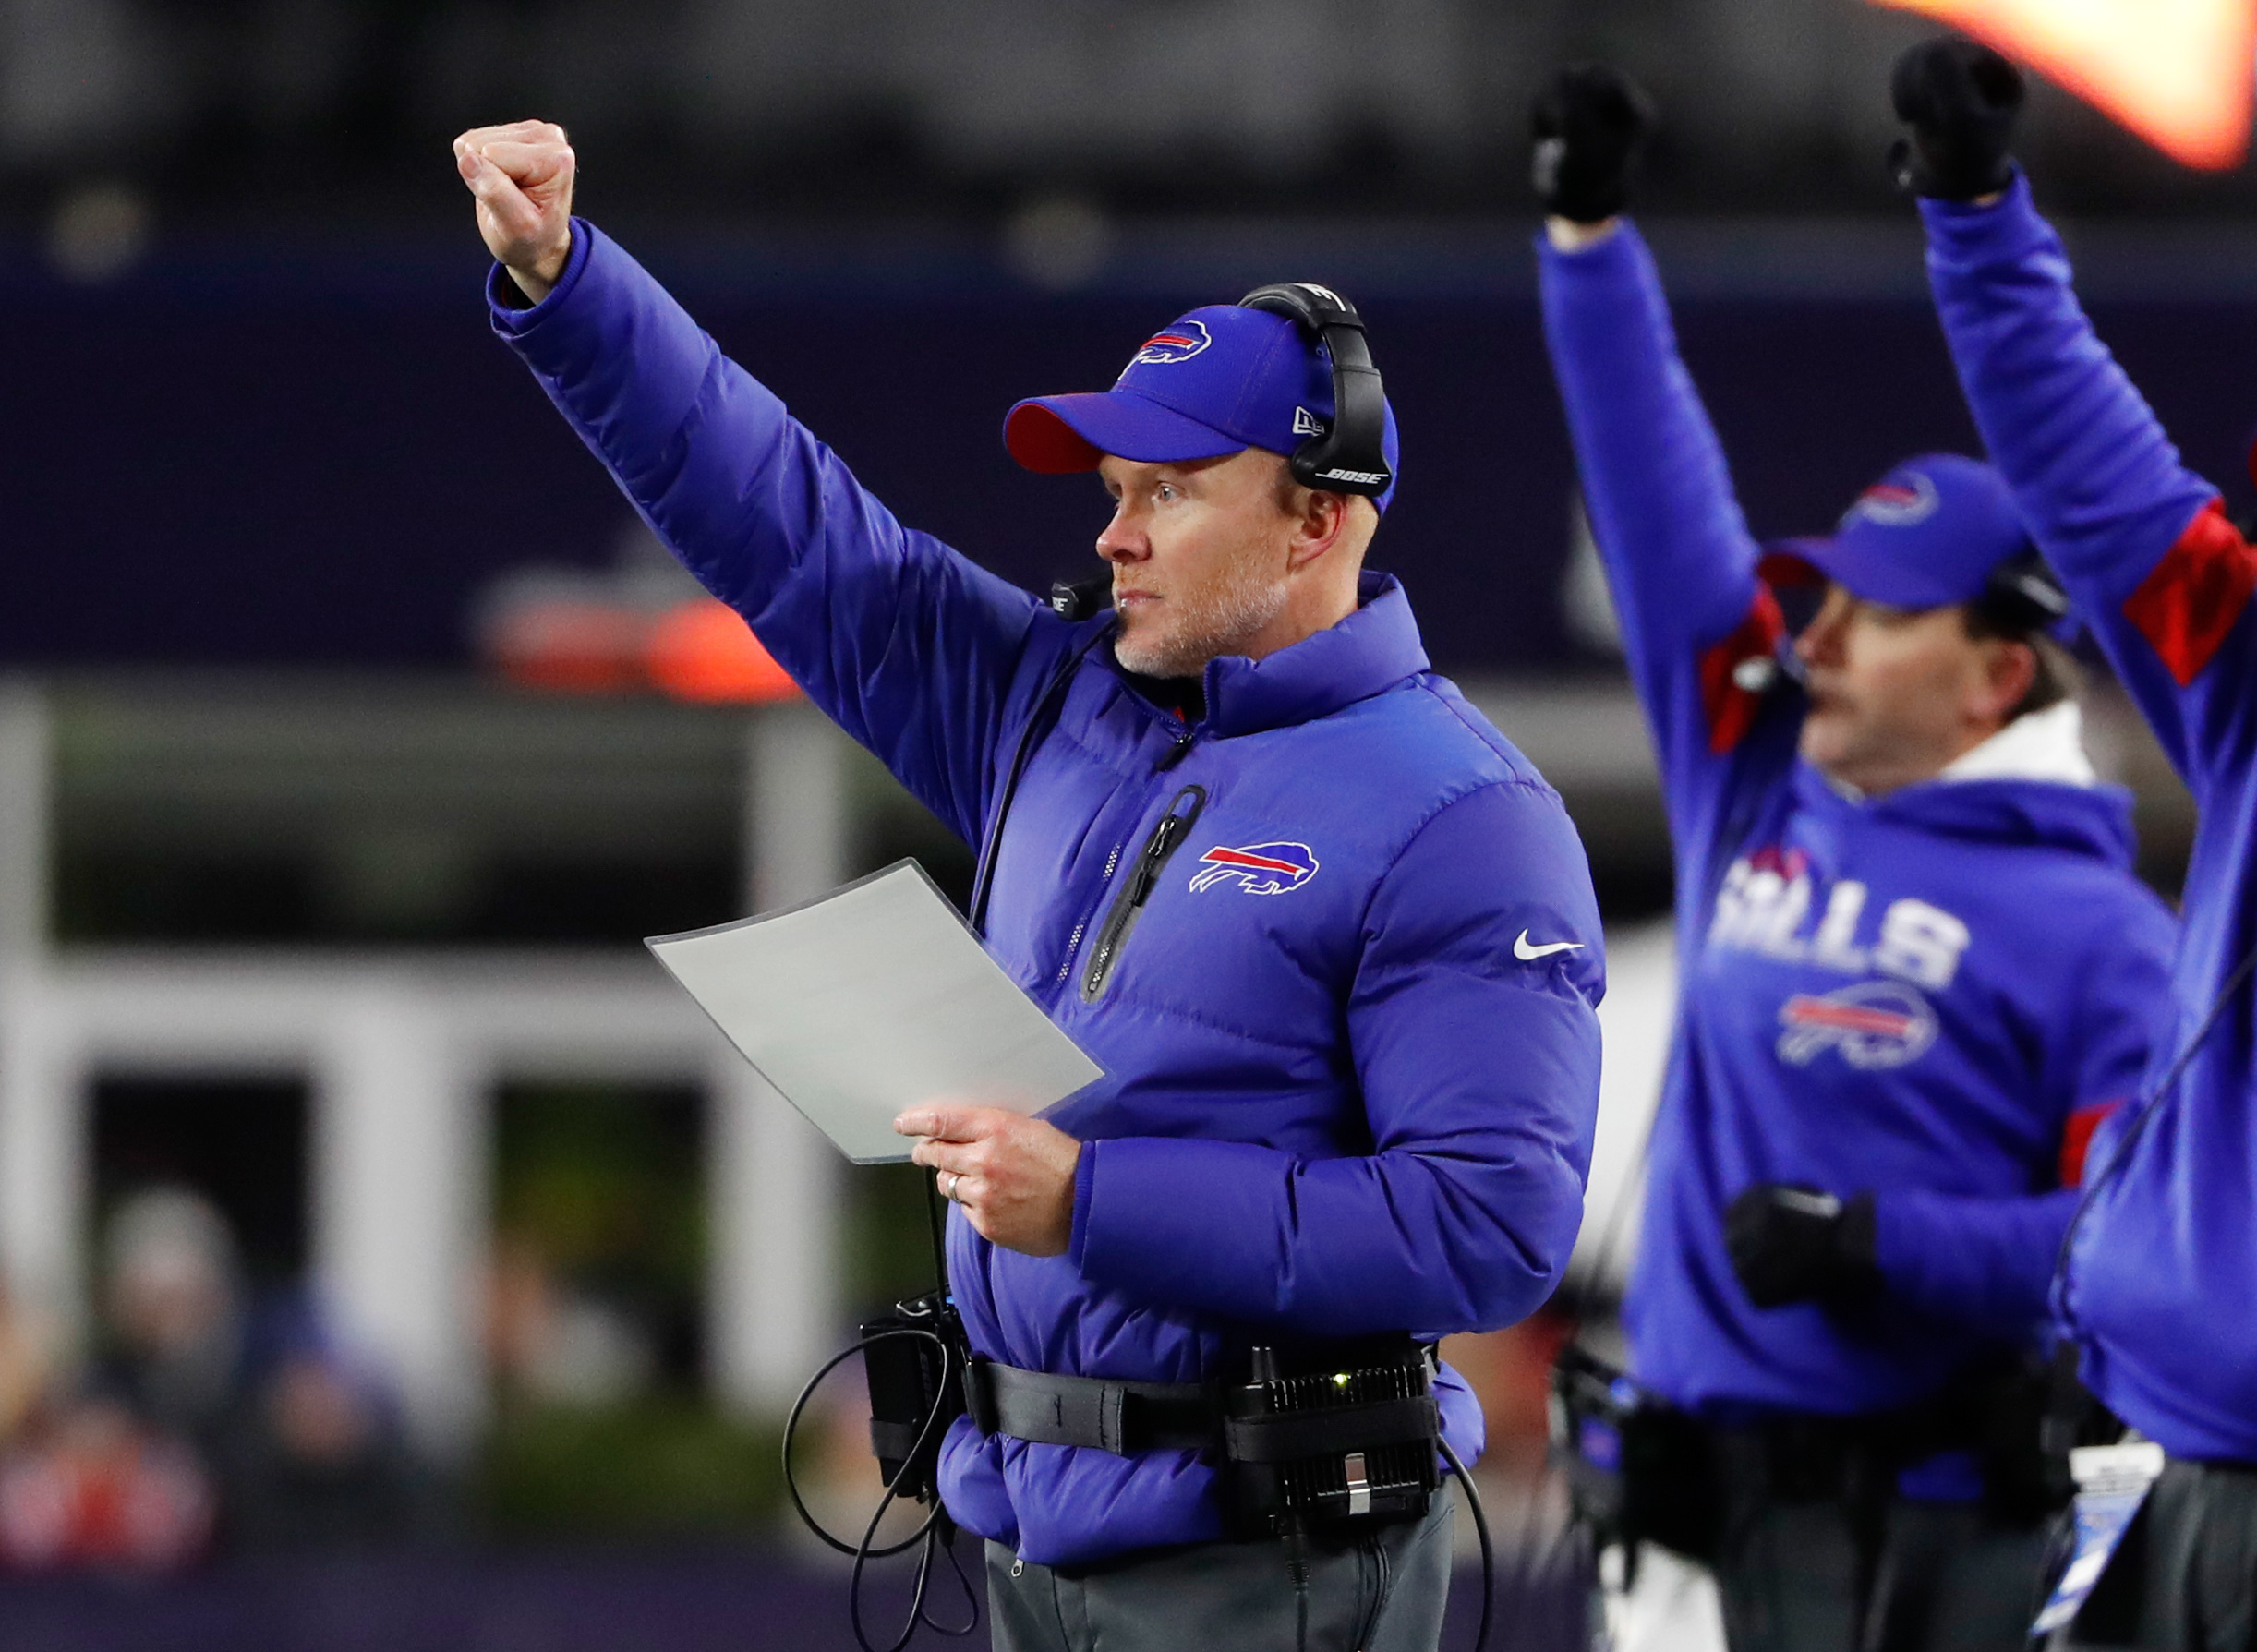 McDermott A Finalist For Coach Of The Year Award Tonight